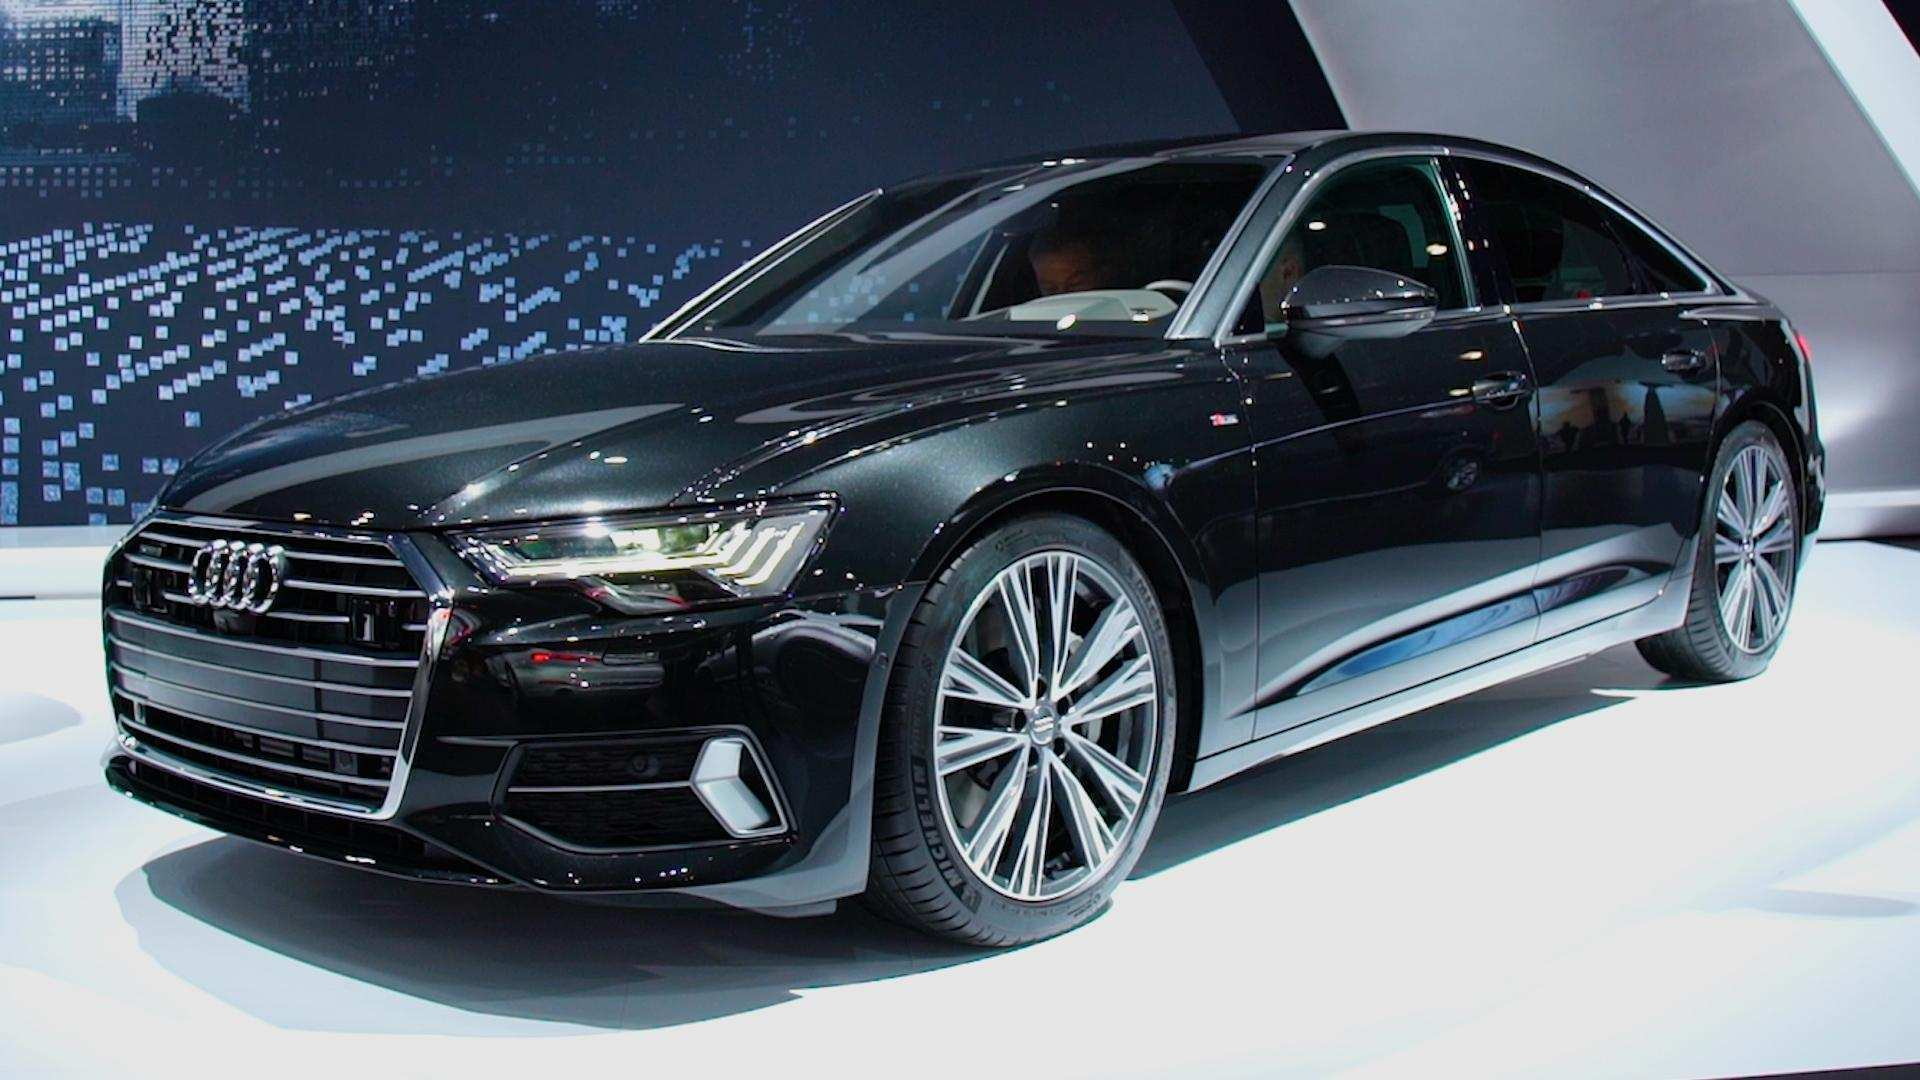 58 Concept of New Audi New A6 2019 Performance Pricing for New Audi New A6 2019 Performance